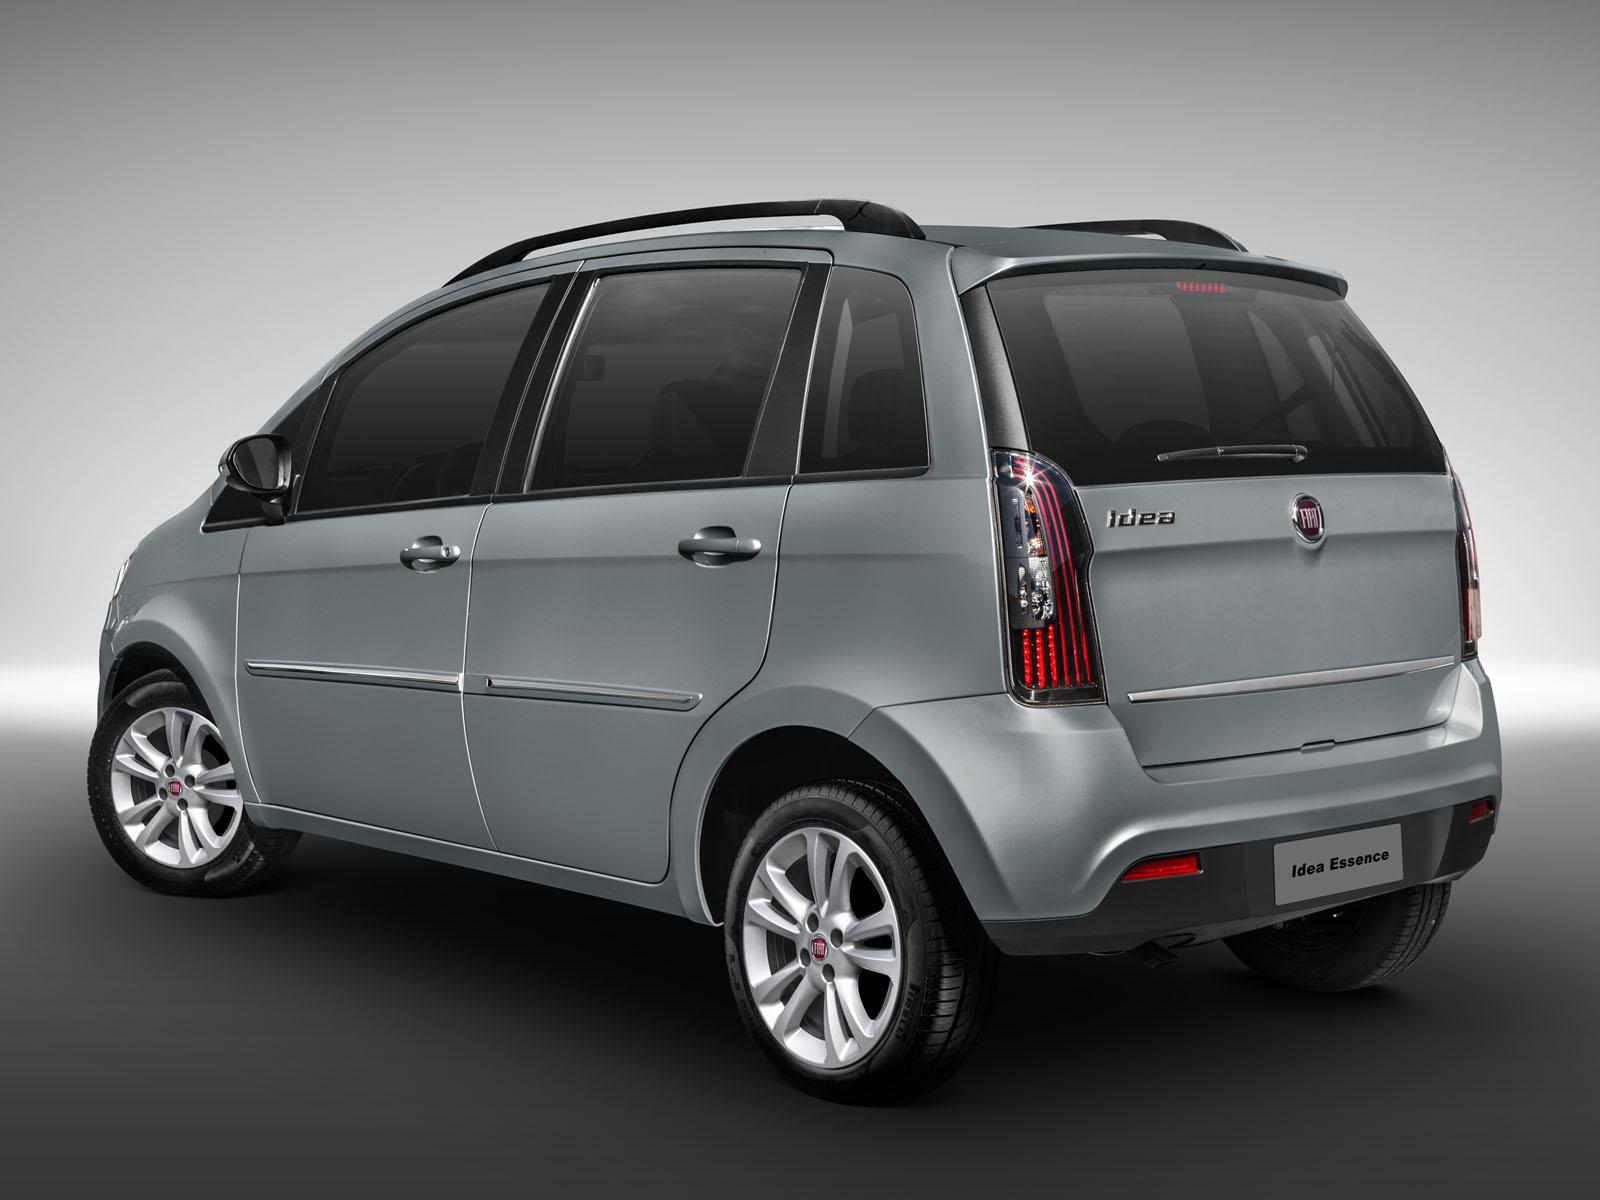 2014 Fiat Idea - photo gallery